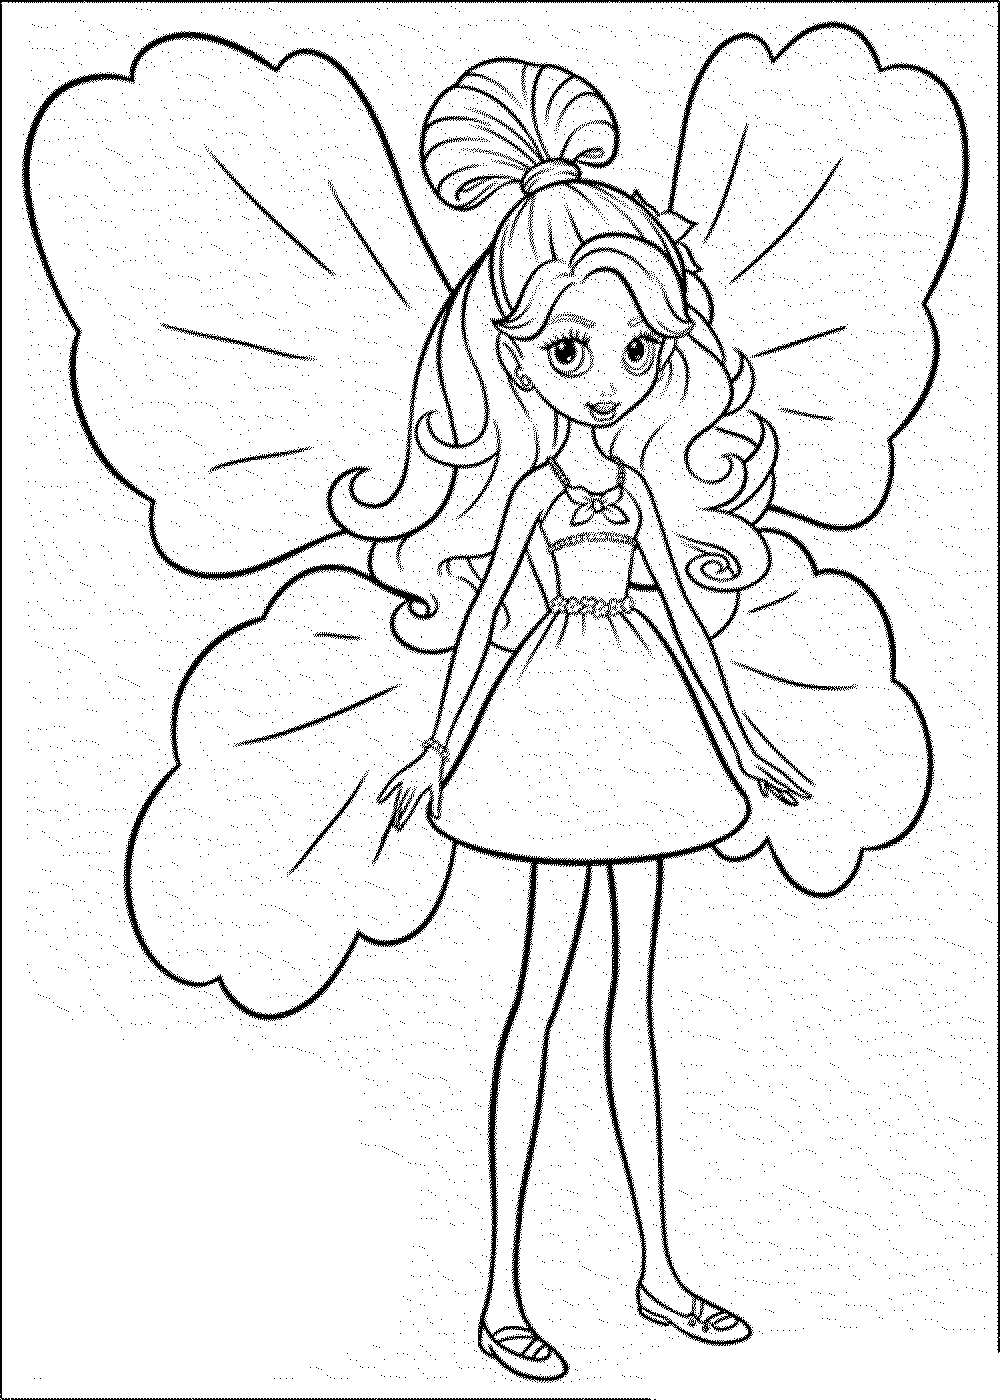 Drawn barbie cute Barbie Butterfly coloring Pages Color